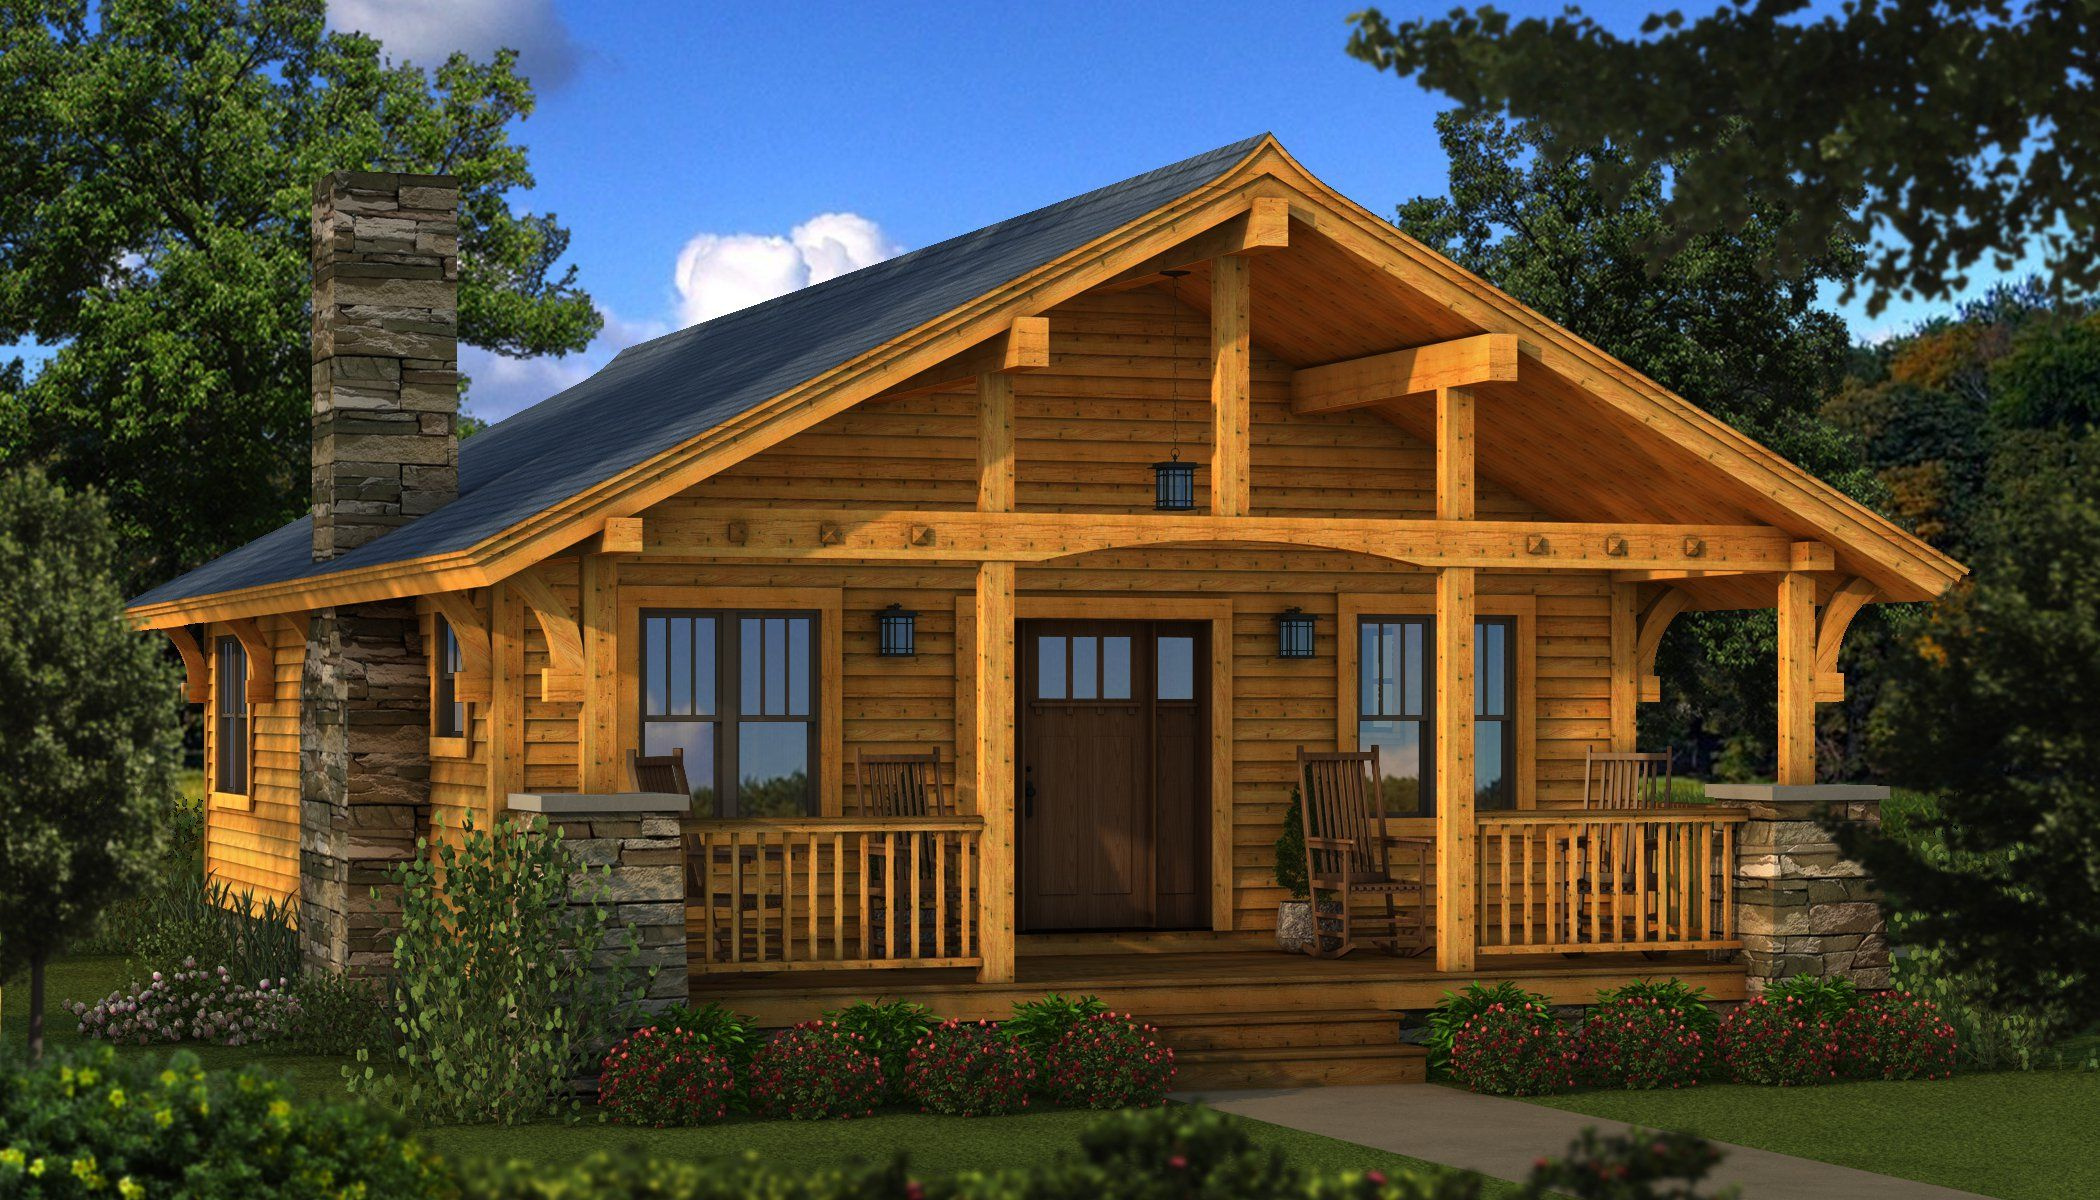 Fancy Bungalow 2: Log Cabin Kit - Plans & Information | Southland Log for Bungalow Homes